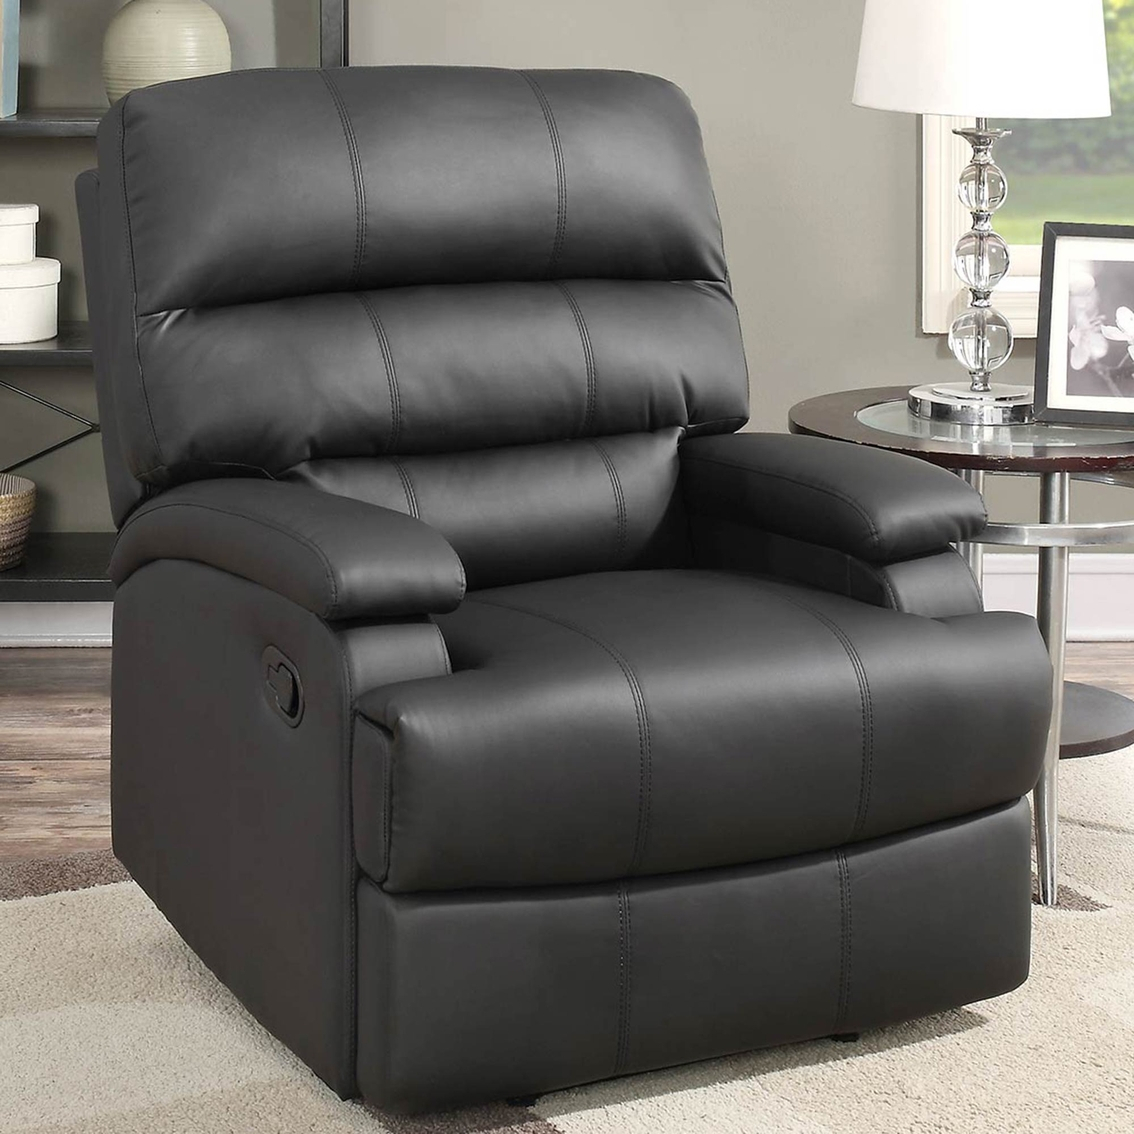 Lifestyle Solutions Rory Reclining Faux Leather Chair | Chairs Regarding Rory Sofa Chairs (Image 9 of 25)